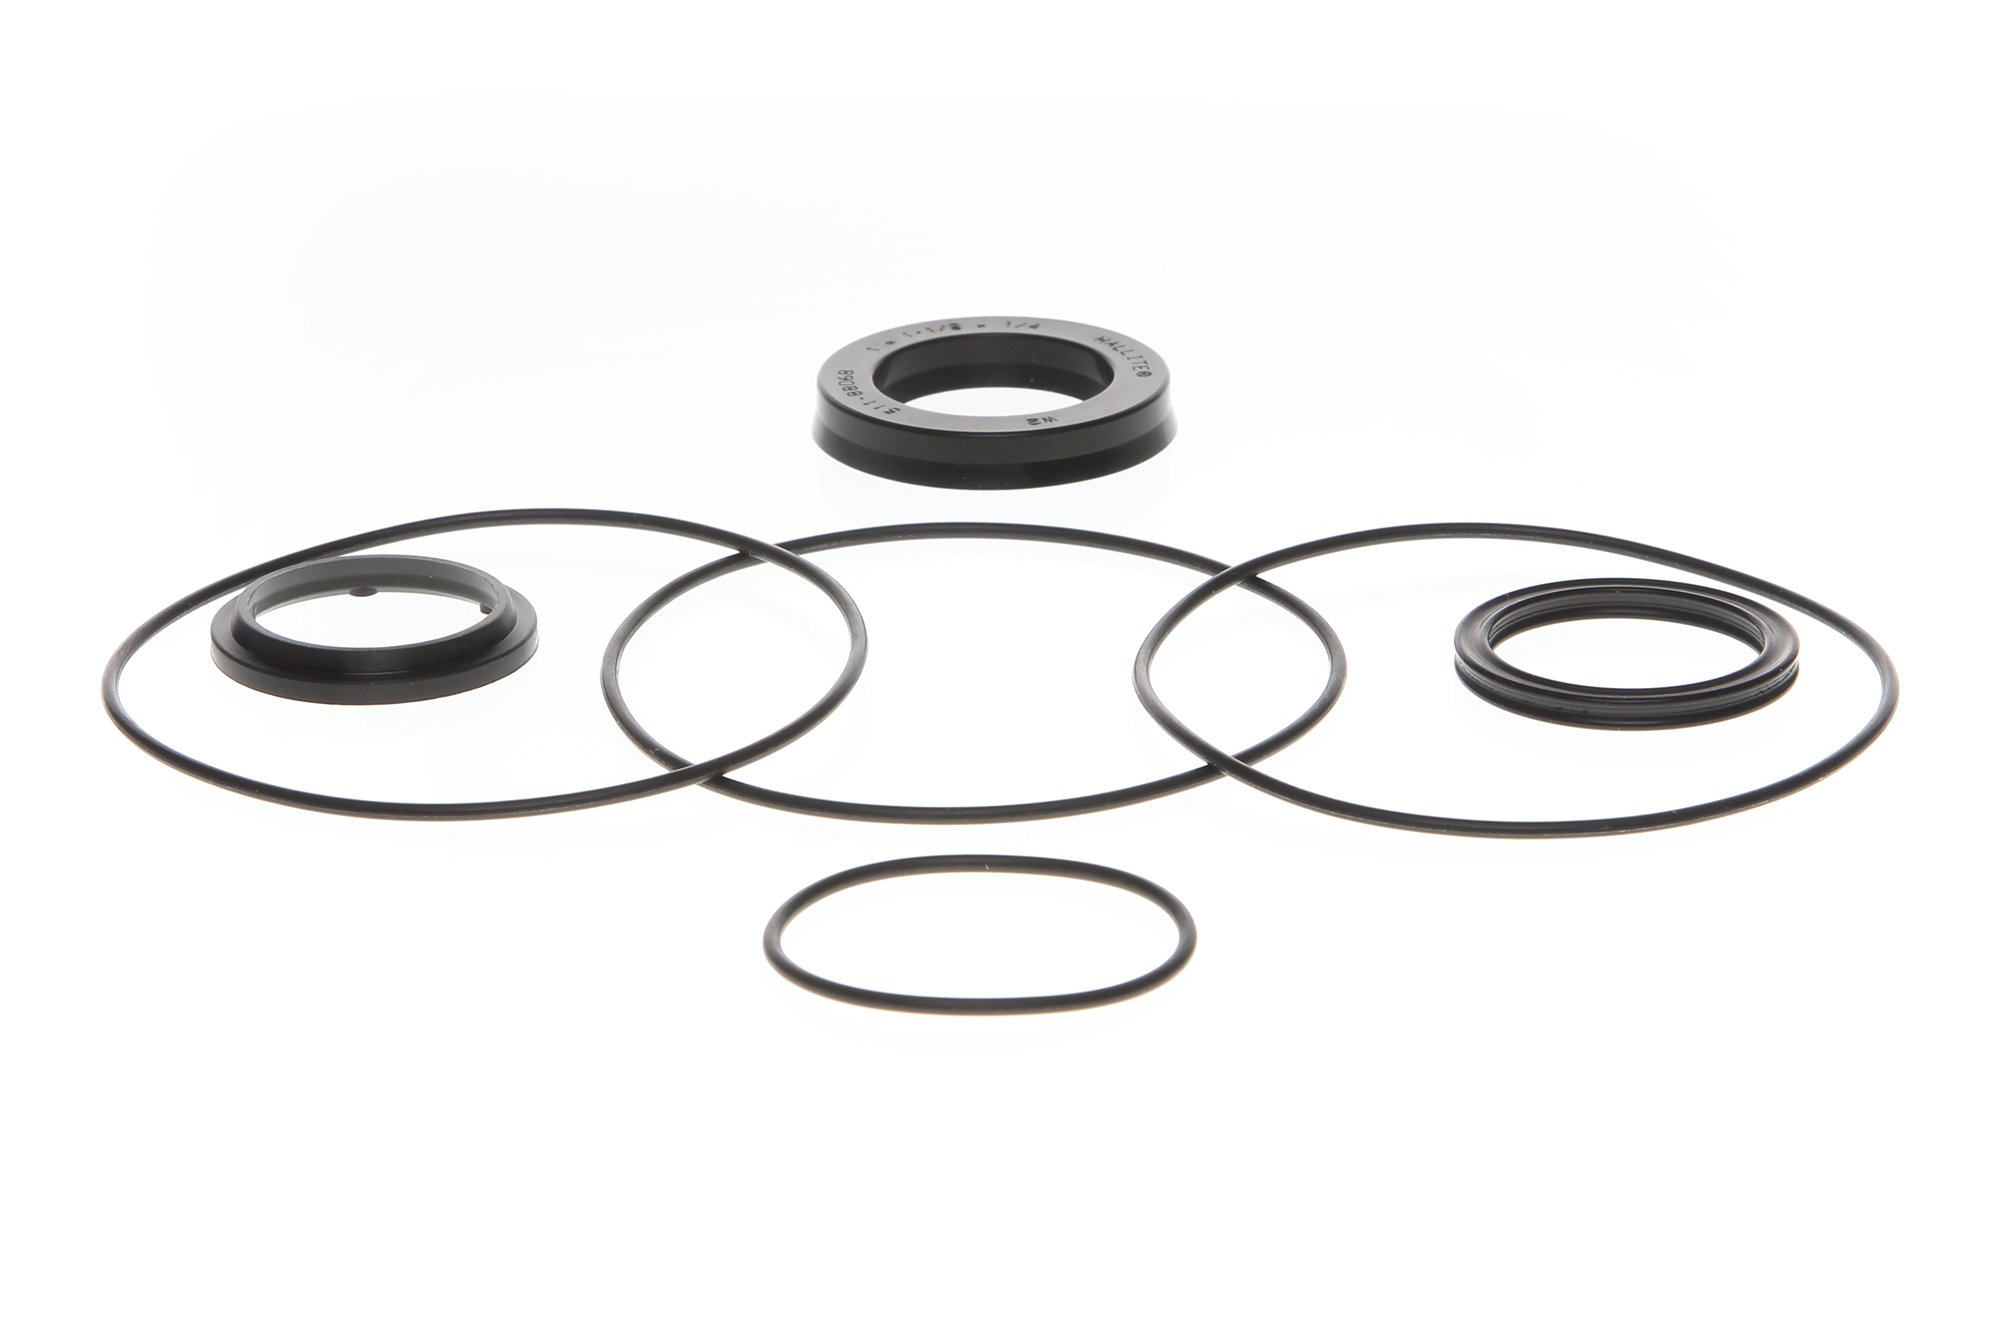 HELM SEAL KIT FOR 50 SERIES Replaces kit HS-05